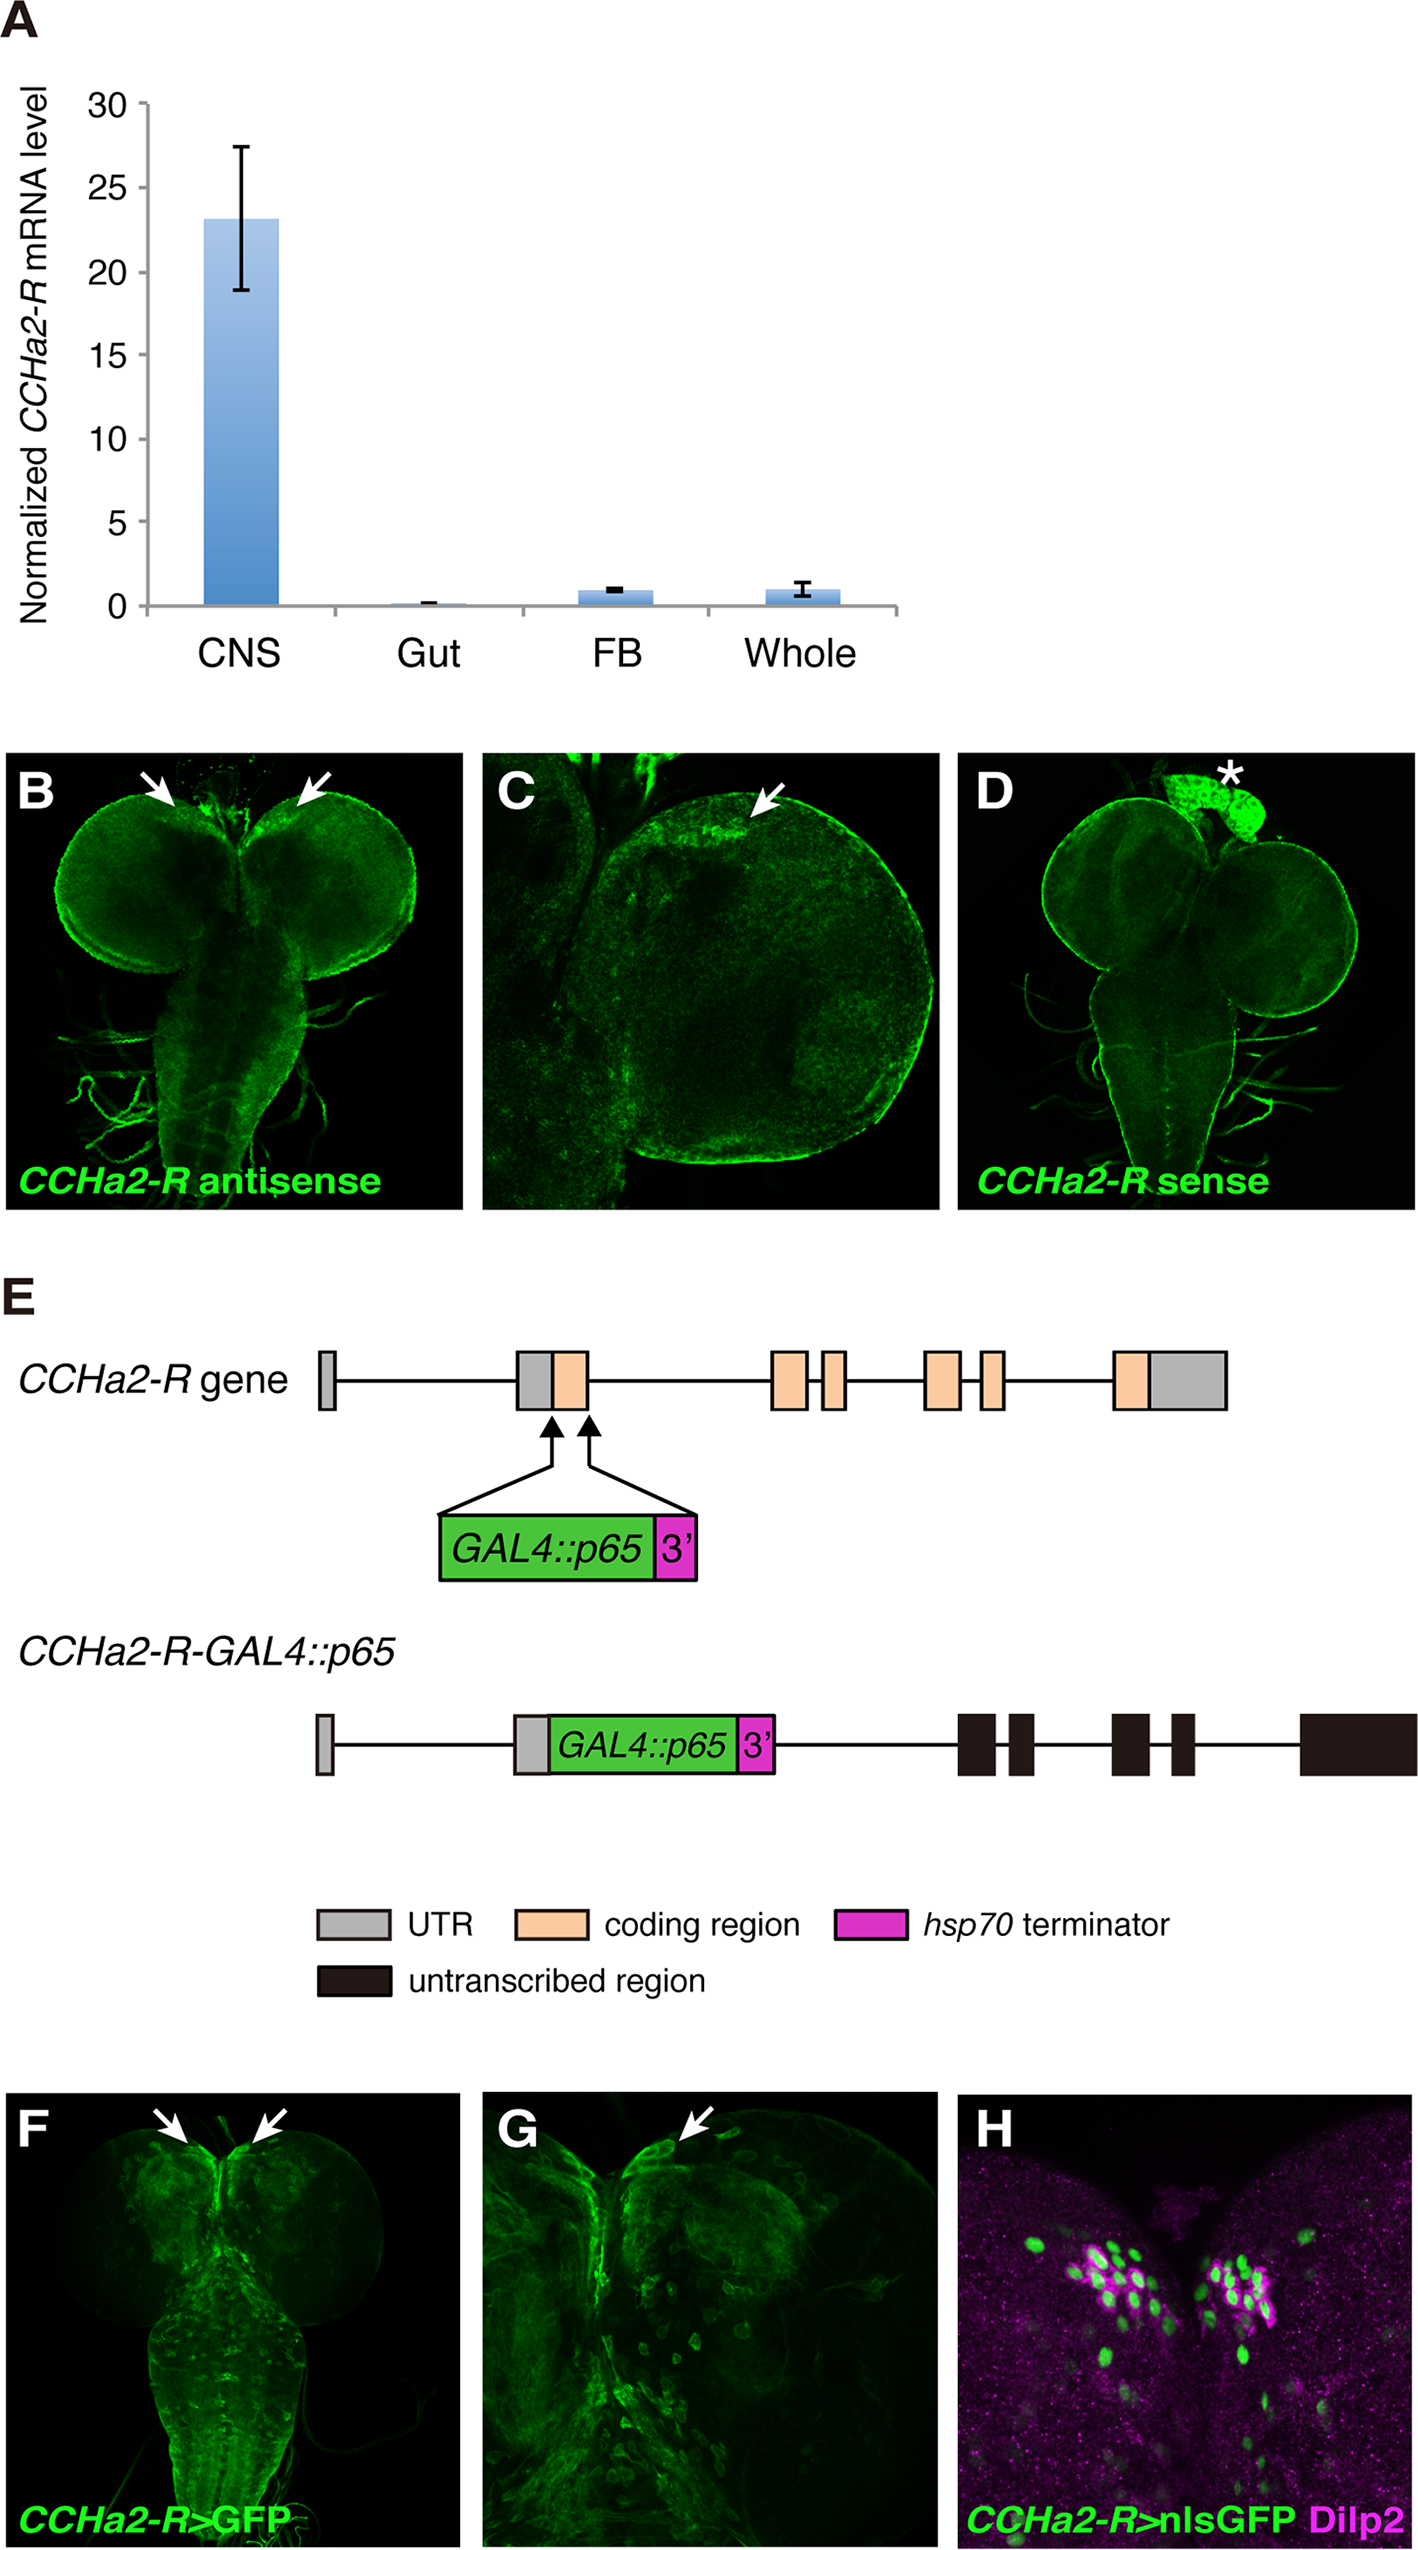 The CCHa2 receptor is expressed in the brain including the IPCs.